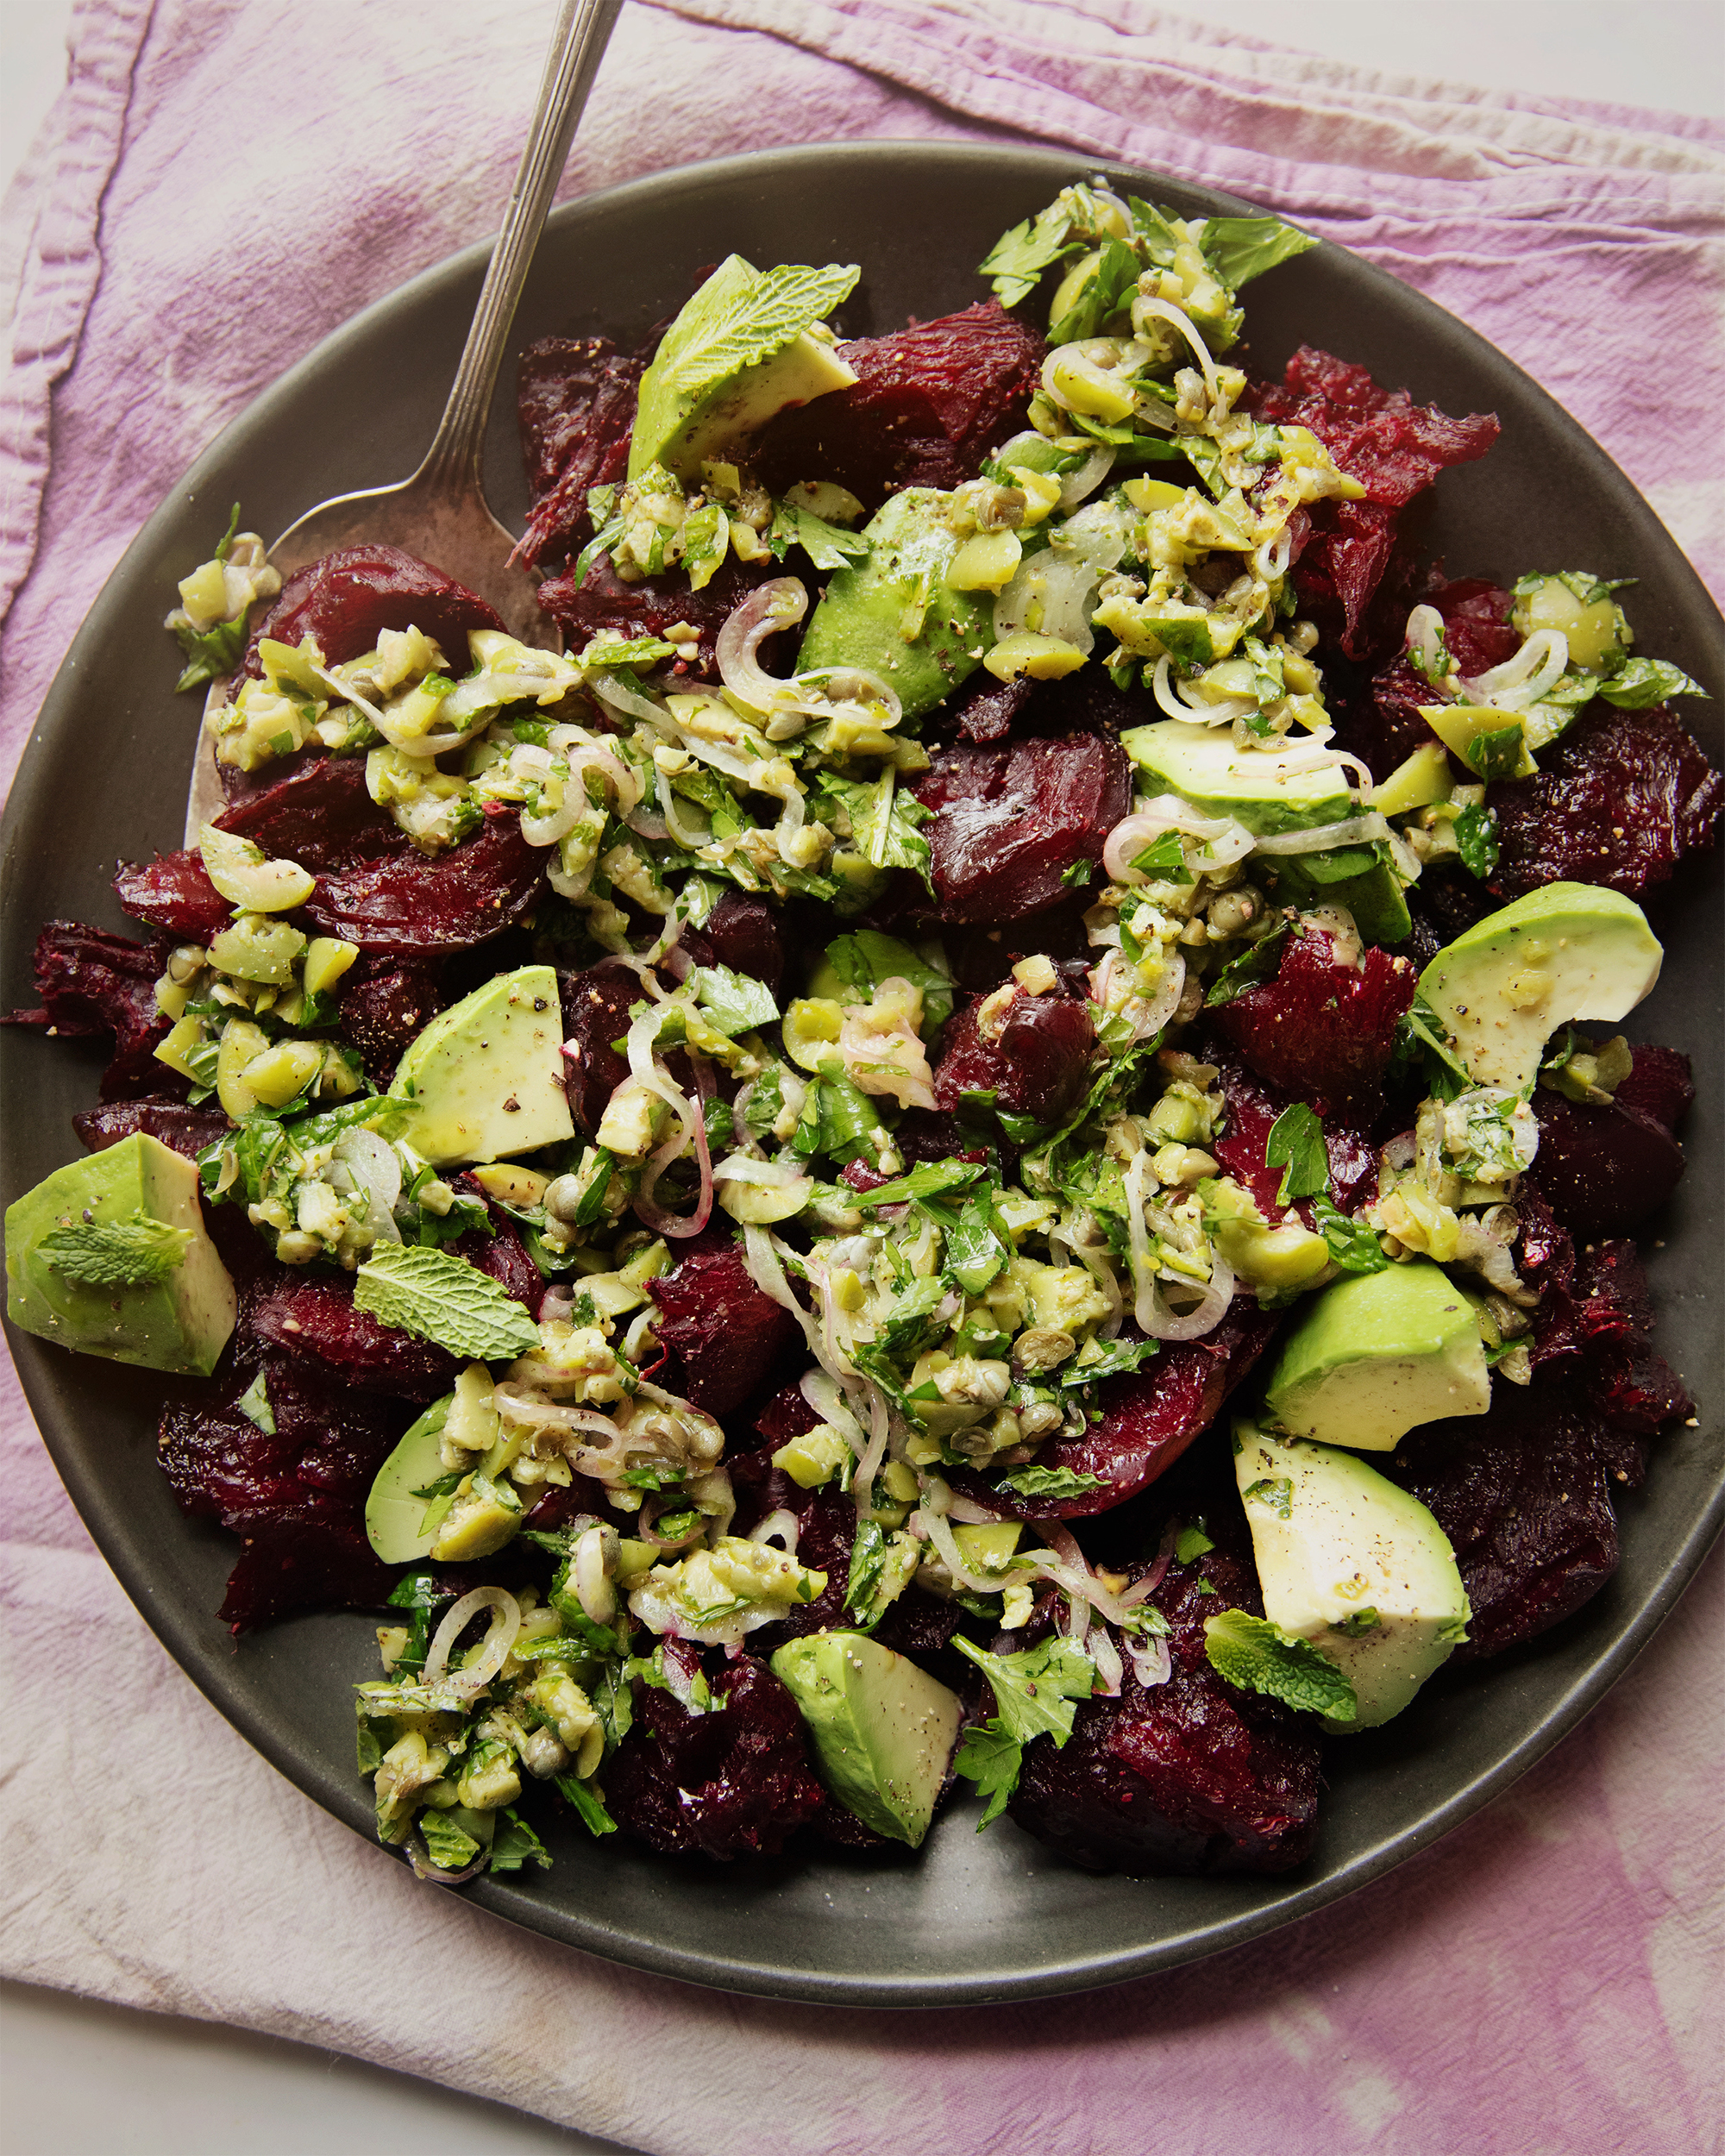 An overhead shot of a crushed beets salad with chunky olive dressing, mint, and avocado. The salad is on a matte black plate on top of a pink and purple tie-dyed linen.